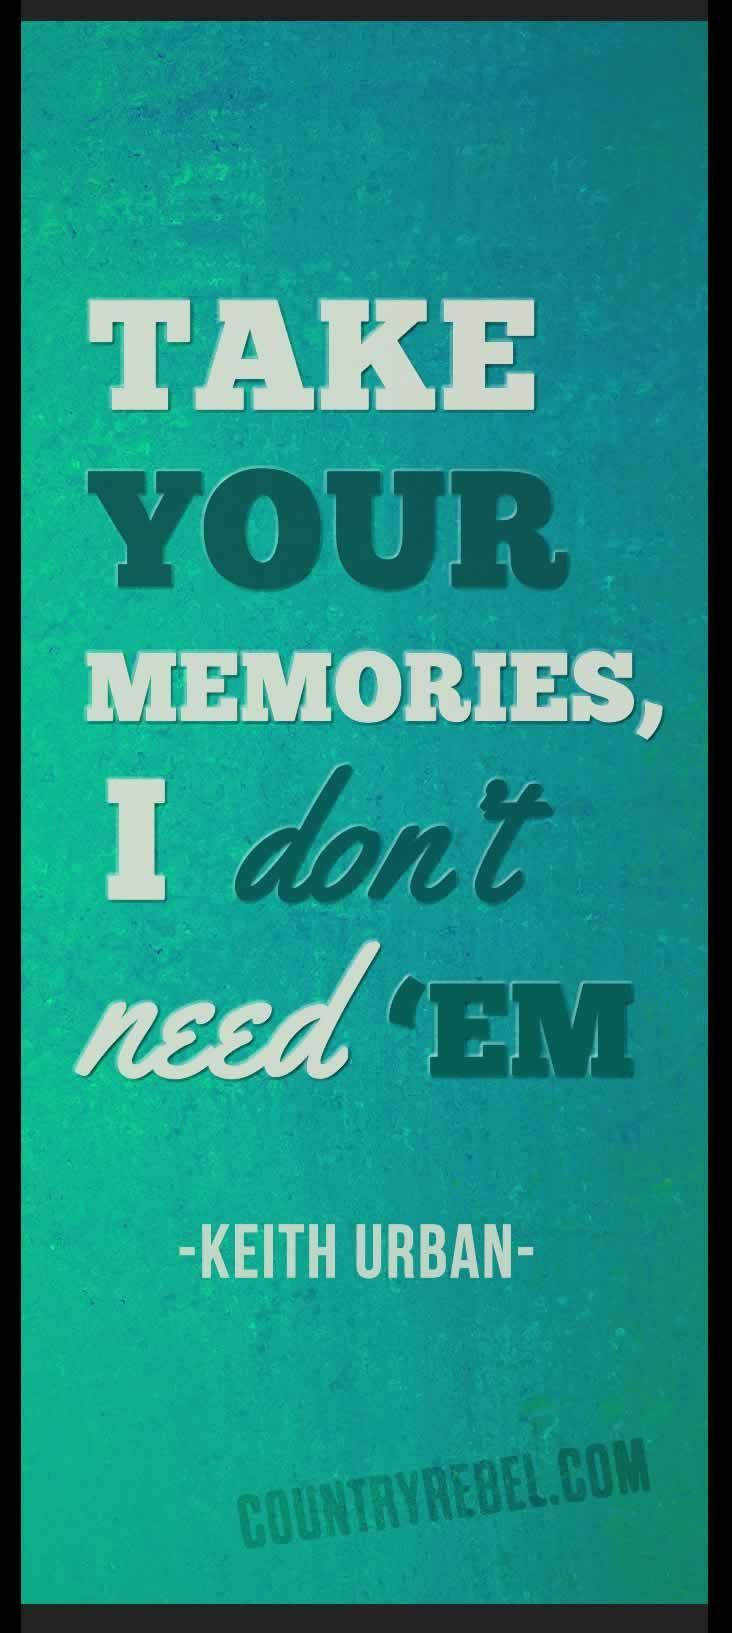 Music Lyrics Quotes | Keith Urban Songs - You'll Think Of Me Lyrics Quote | Take Your Memories, I don't need 'em http://countryrebel.com/blogs/videos/18143955-keith-urban-and-faith-hill-youll-think-of-me-and-the-lucky-one-grammy-awards-2006